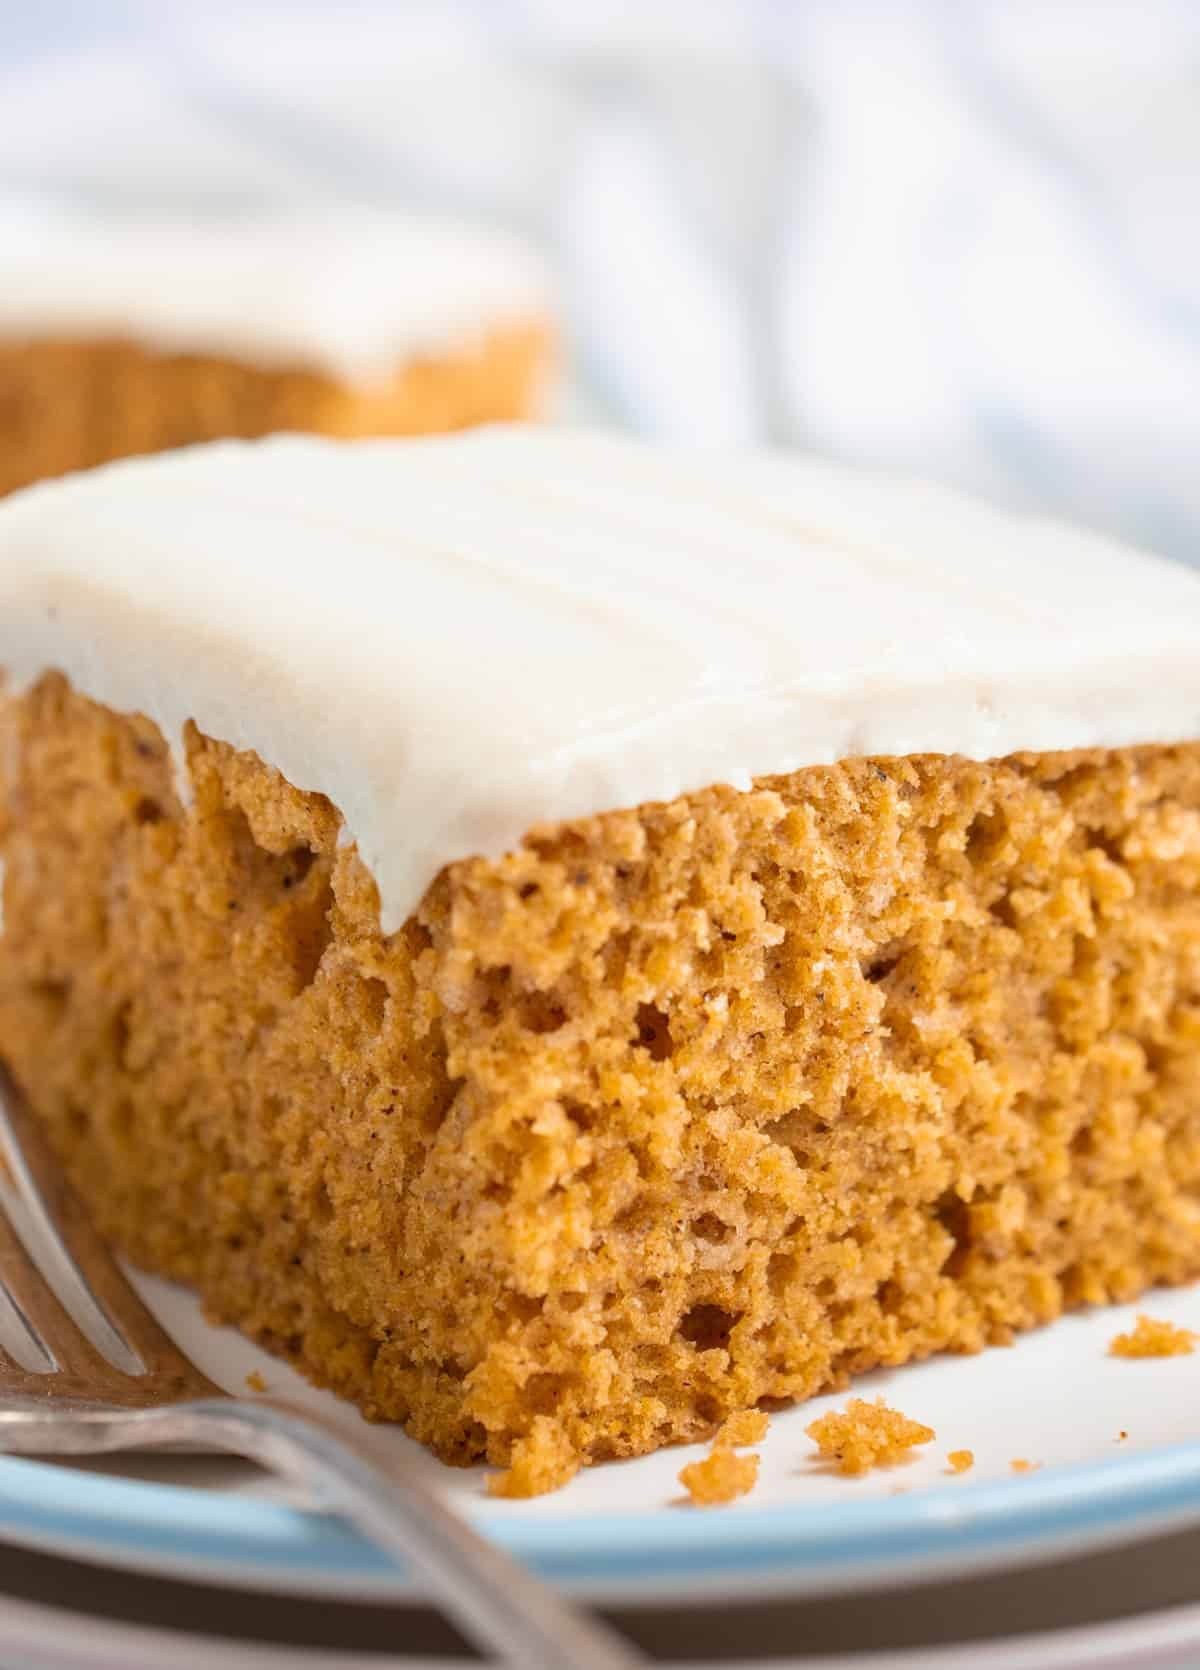 A slice of frosted vegan pumpkin cake on a plate with a fork.